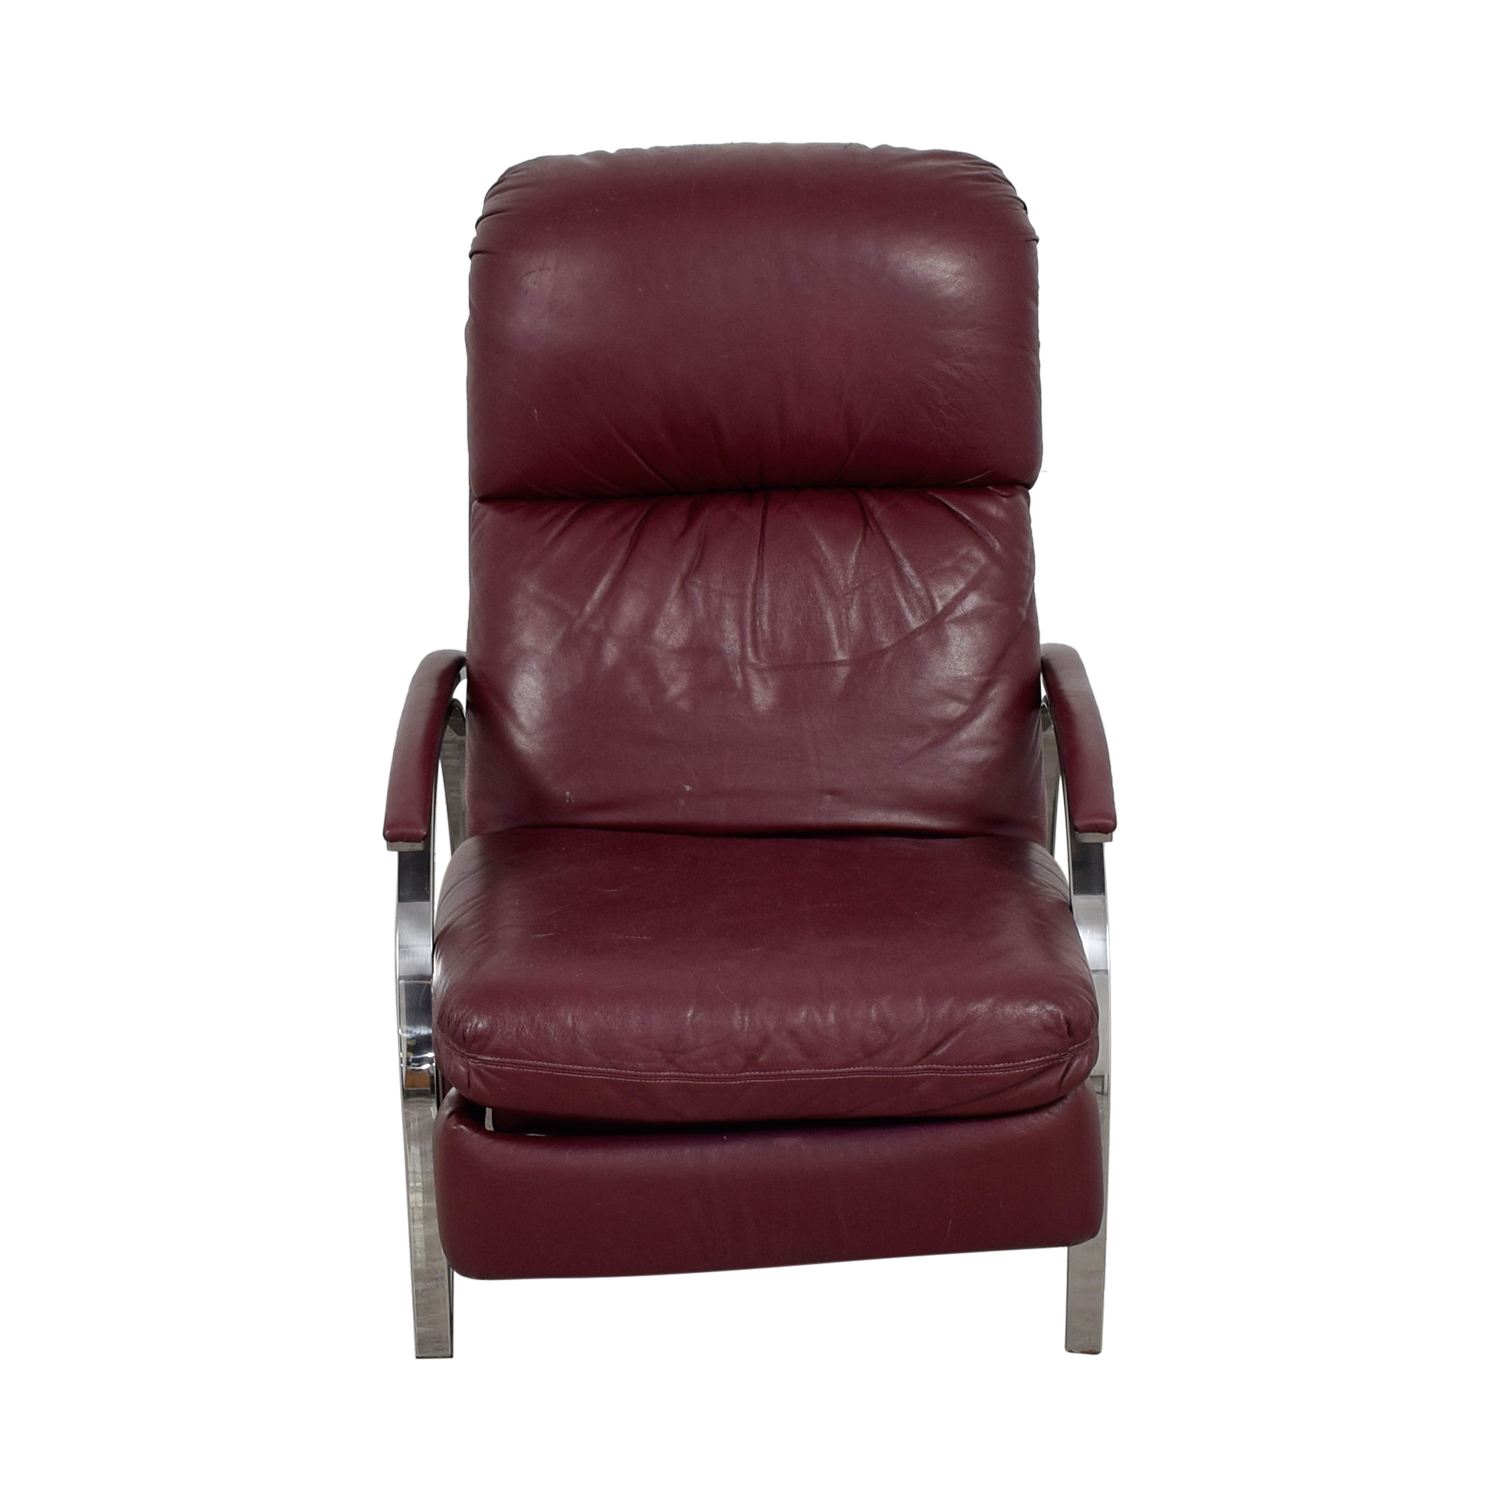 Burgundy Leather Recliner Chair nj